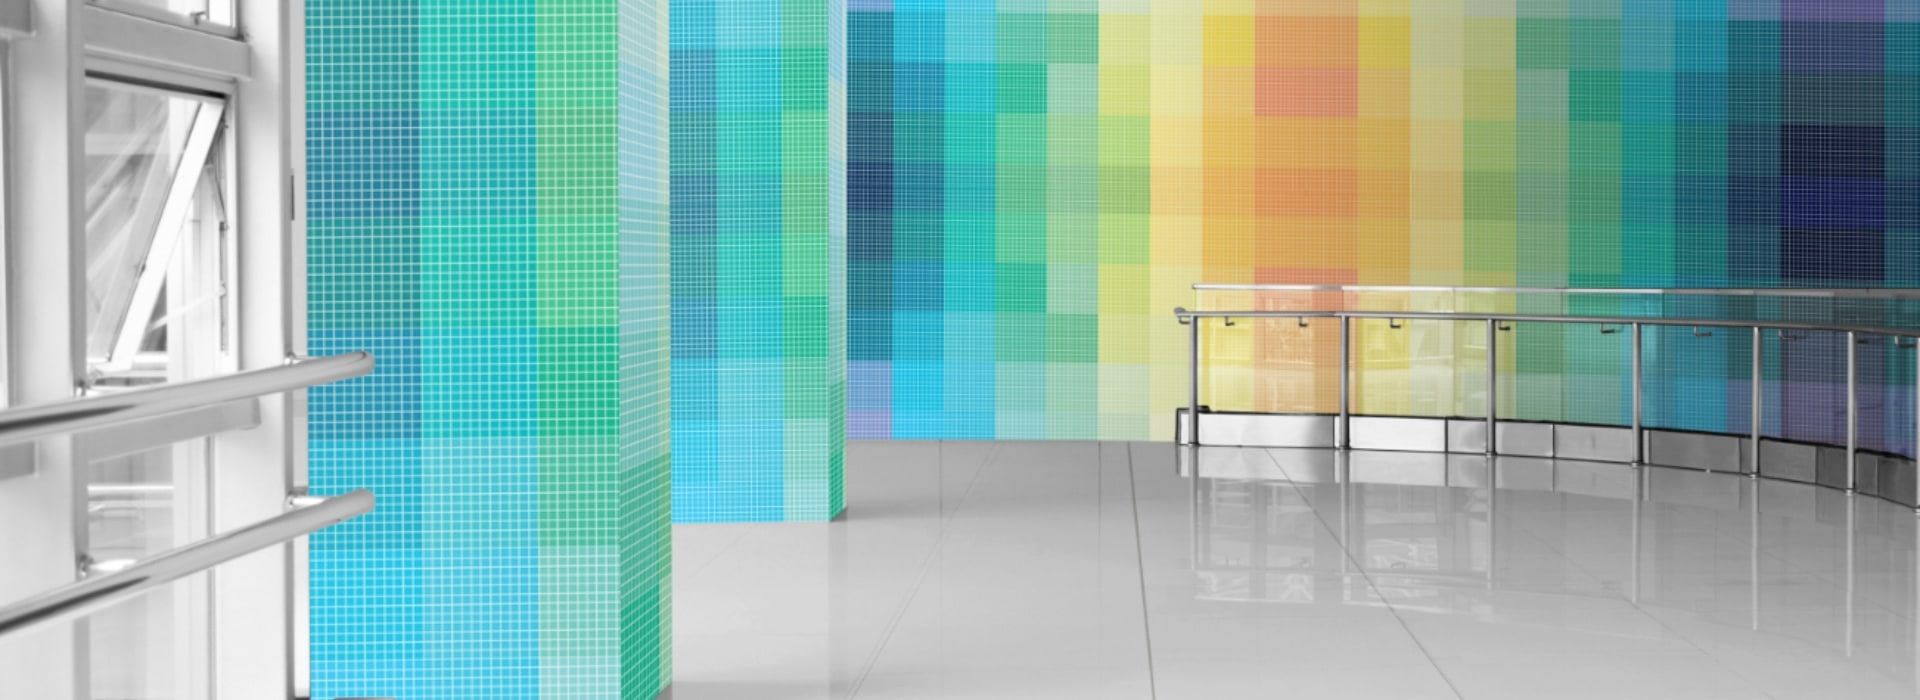 A virtual oasis of color, the glass mosaic adds an aesthetic and uplifting touch to the atmosphere.